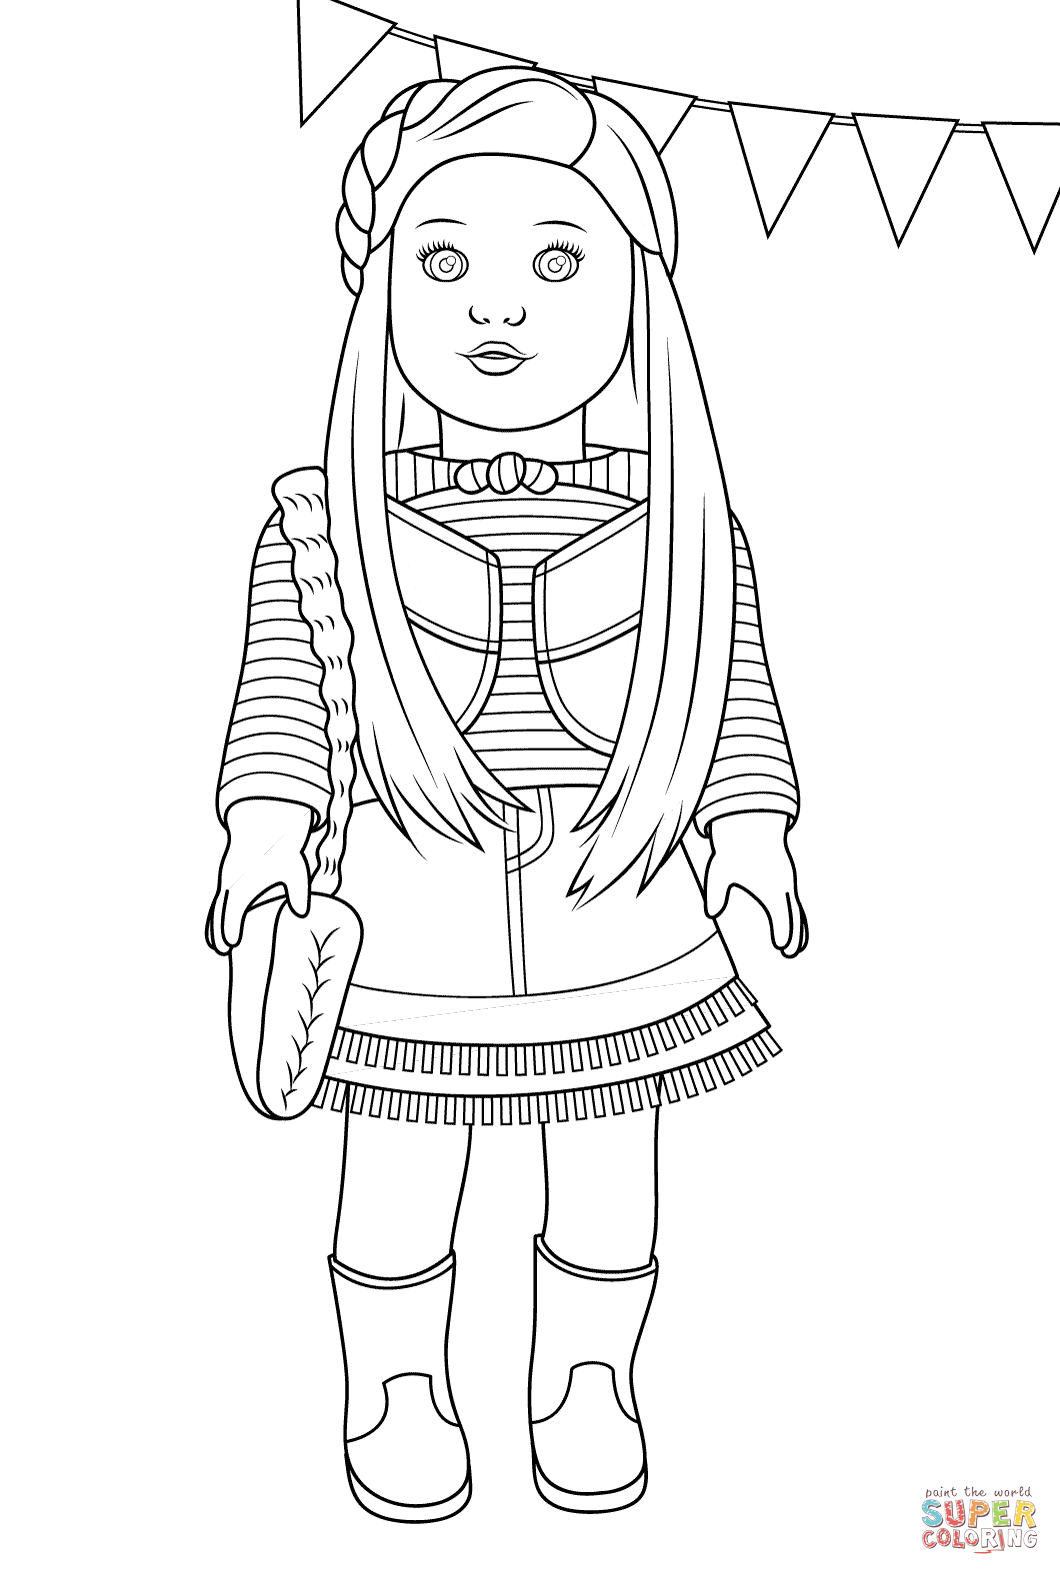 Coloring pages to print for girls - American Girl Doll Coloring Pages